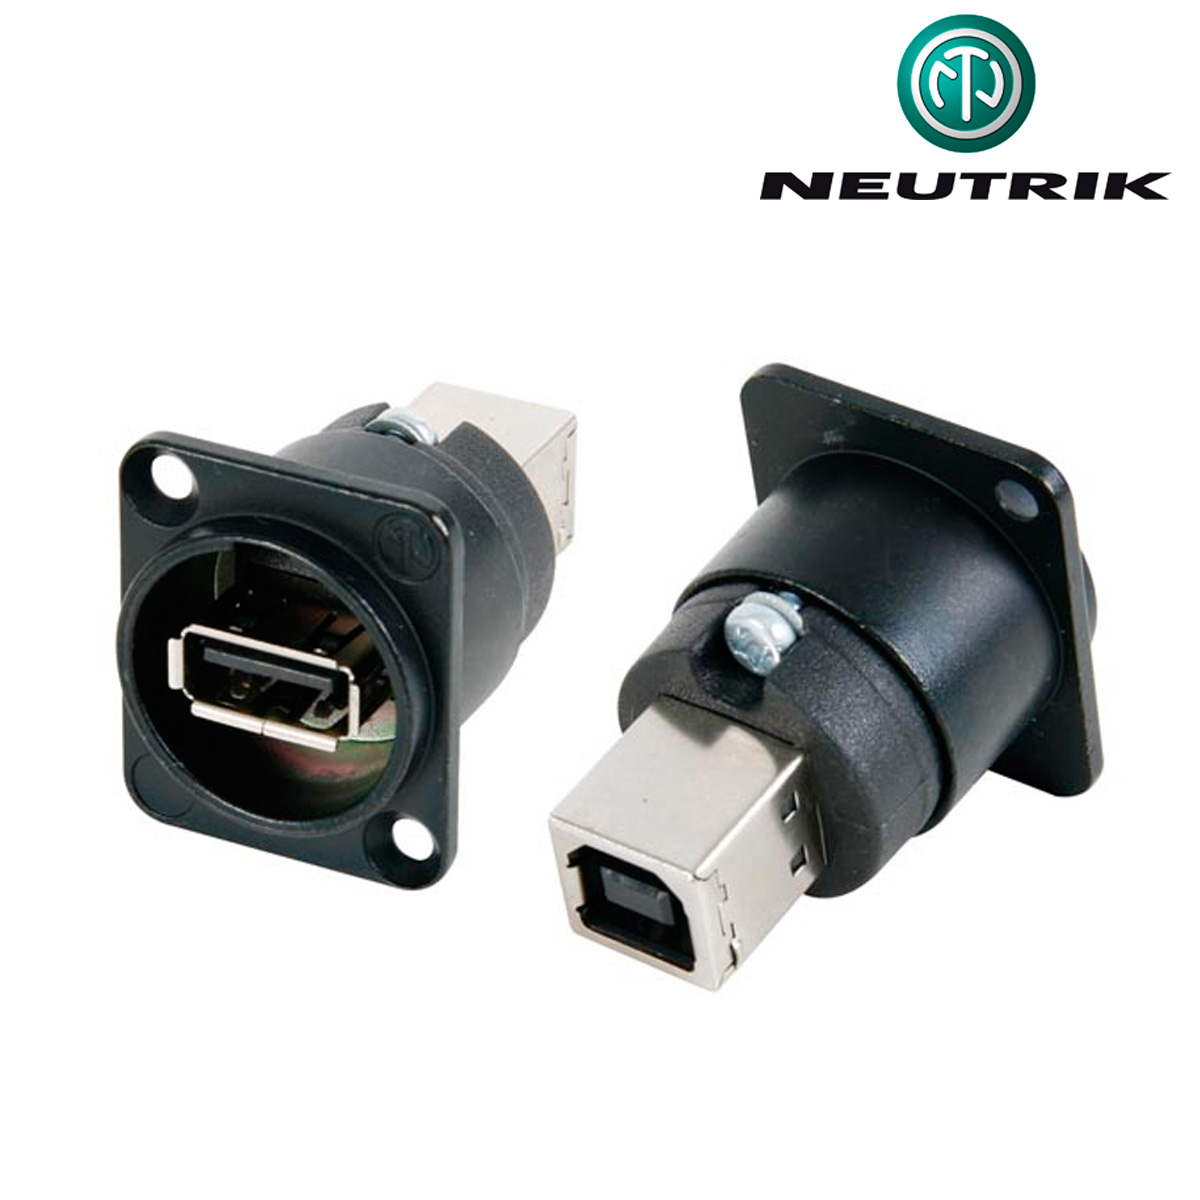 Conector usb 2 0 a hembra chasis neutrik for Conector de red hembra